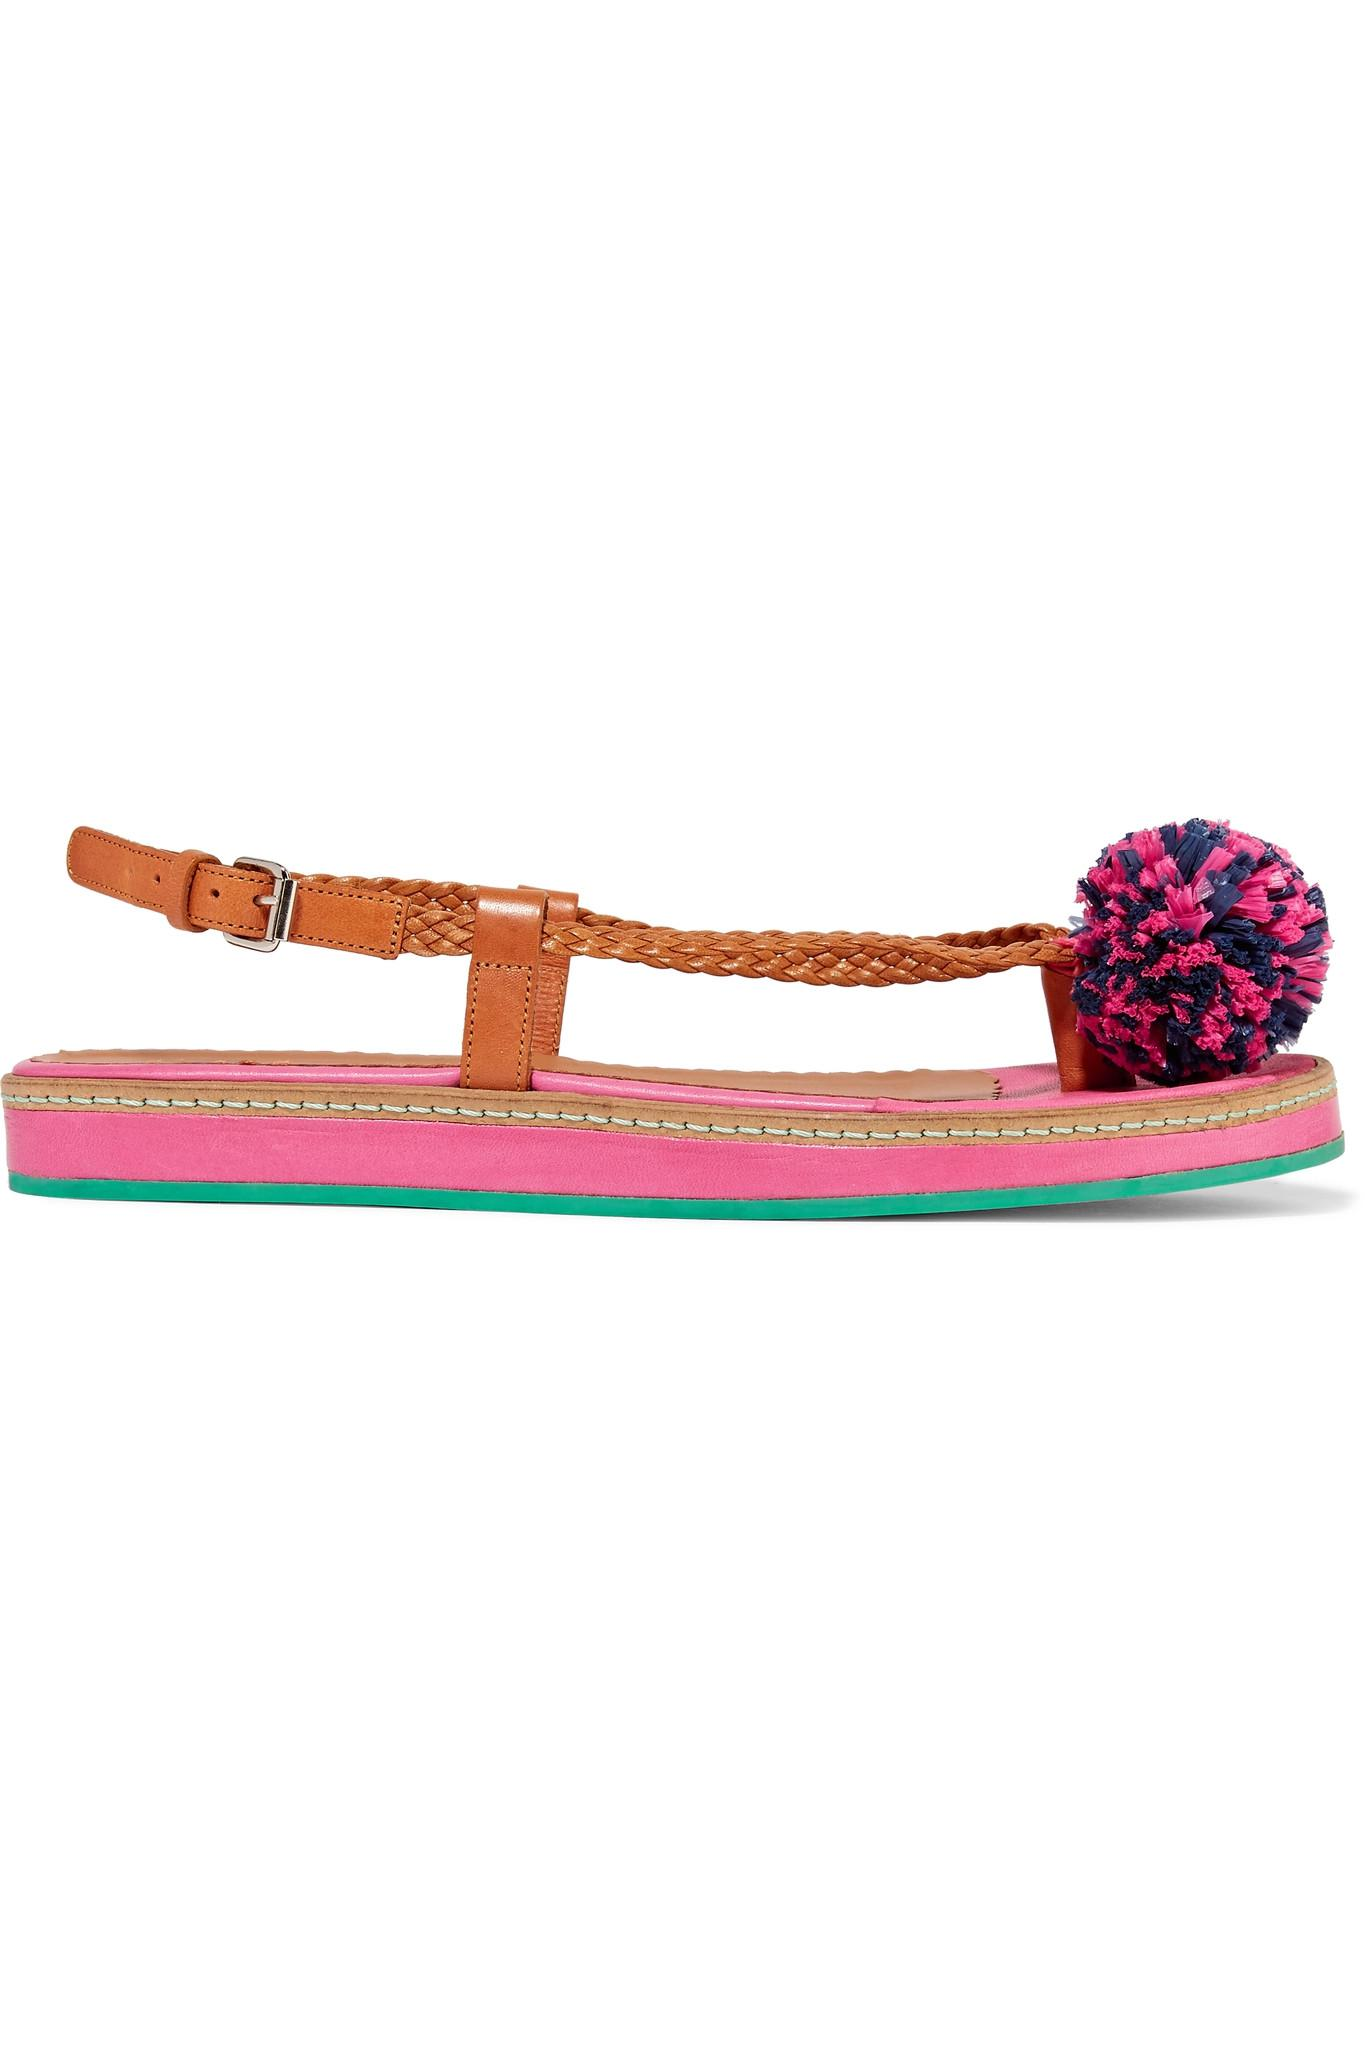 M Missoni Leather Embellished Sandals discount best sale the cheapest sale online 2015 new online clearance sast FXCpYMka